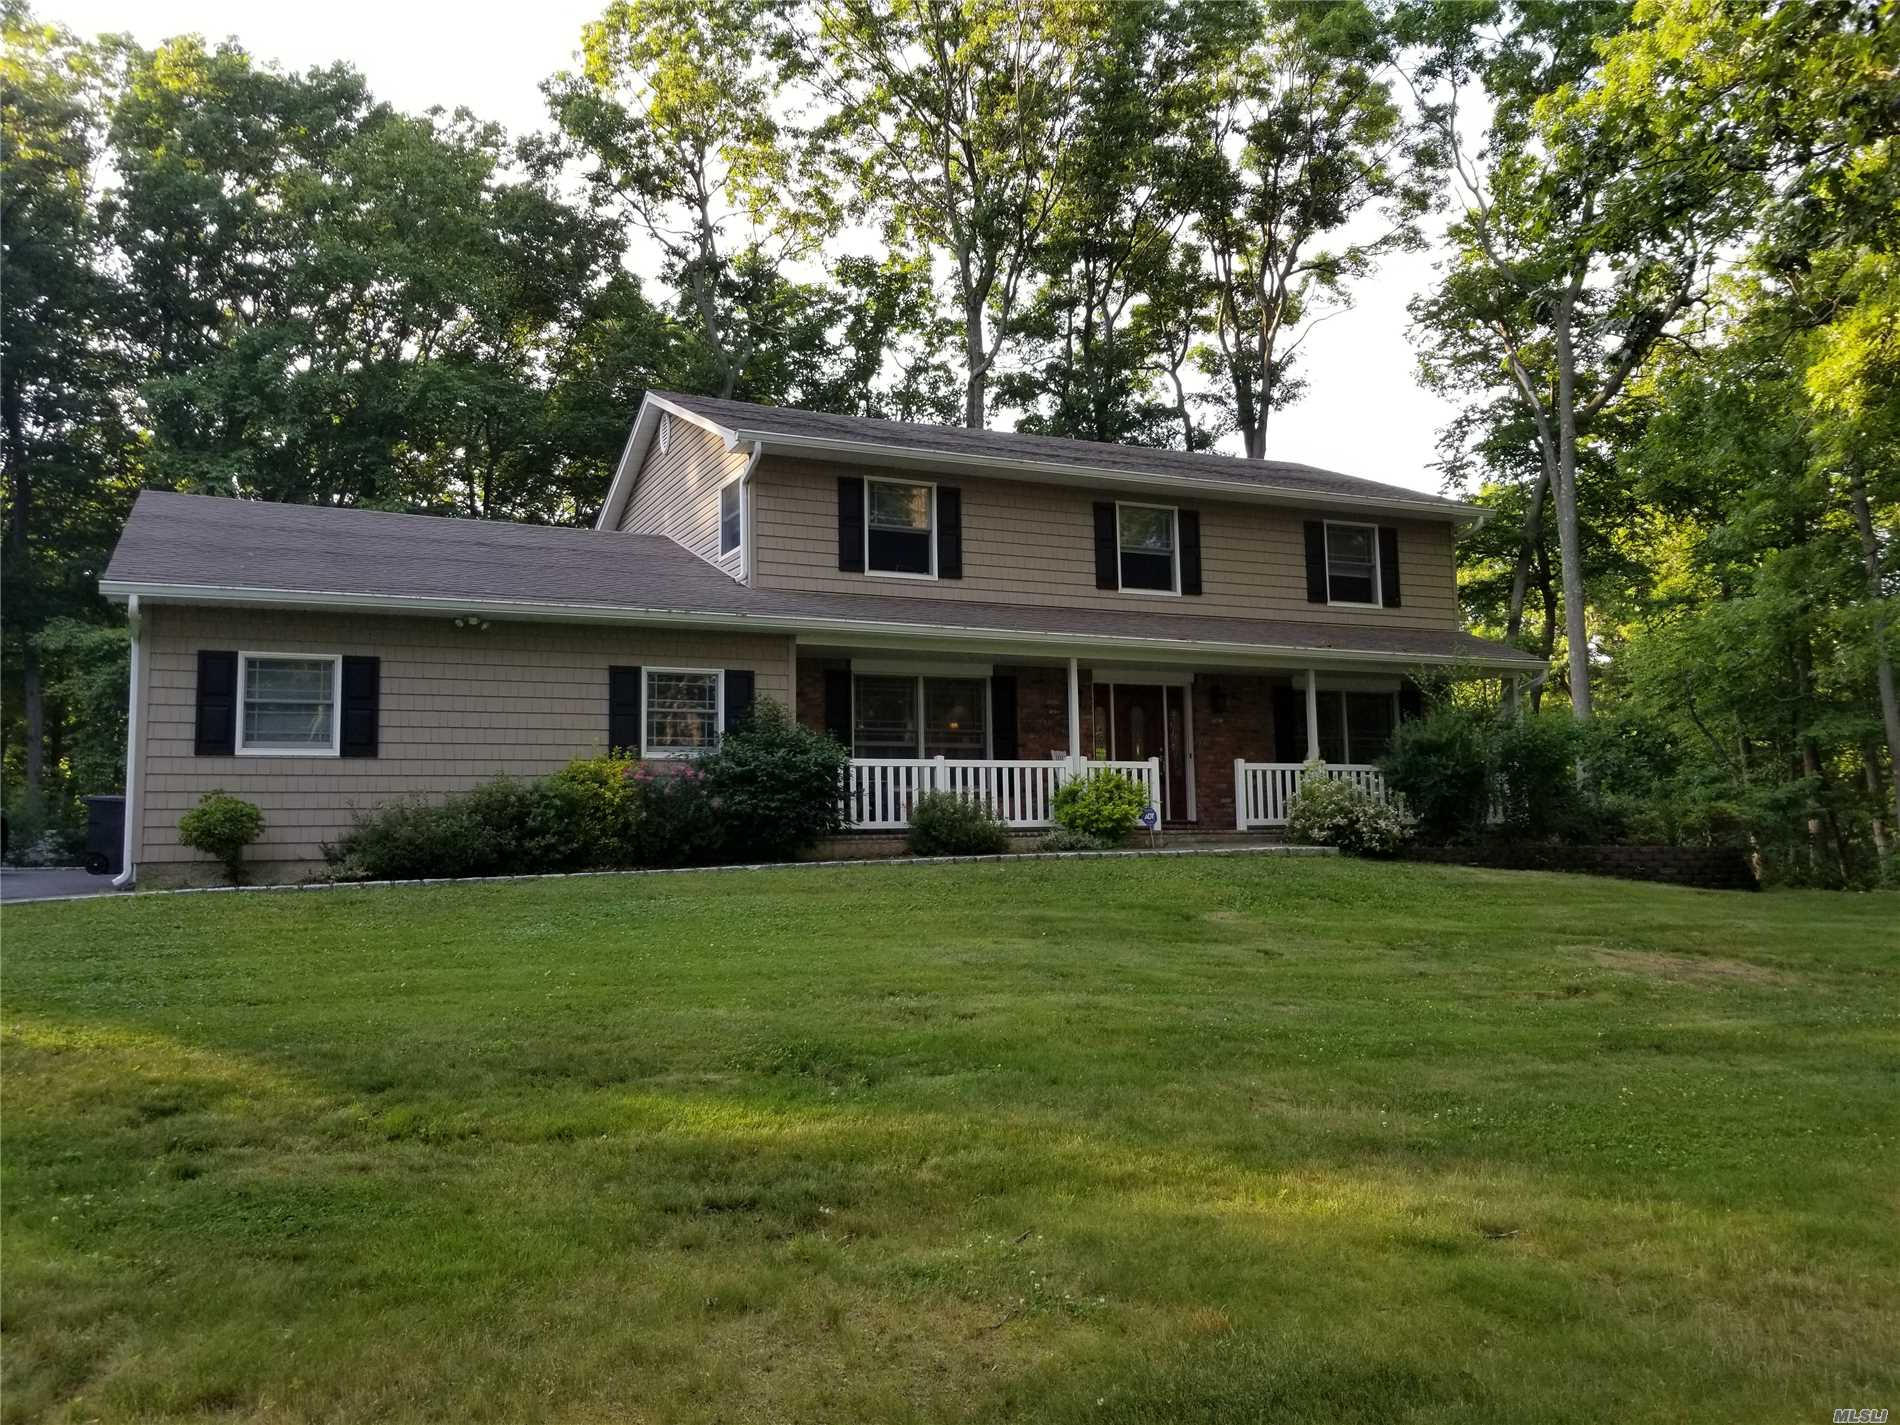 Beautifully Maintained Colonial In Tree Lined Neighborhood With Updated Windows, Siding, Bathrooms, Oil Burner. Flat Property With Trex Deck And Room For A Pool. This House Has Hardwood Floors Throughout, Cherry Kitchen And Granite Countertops.